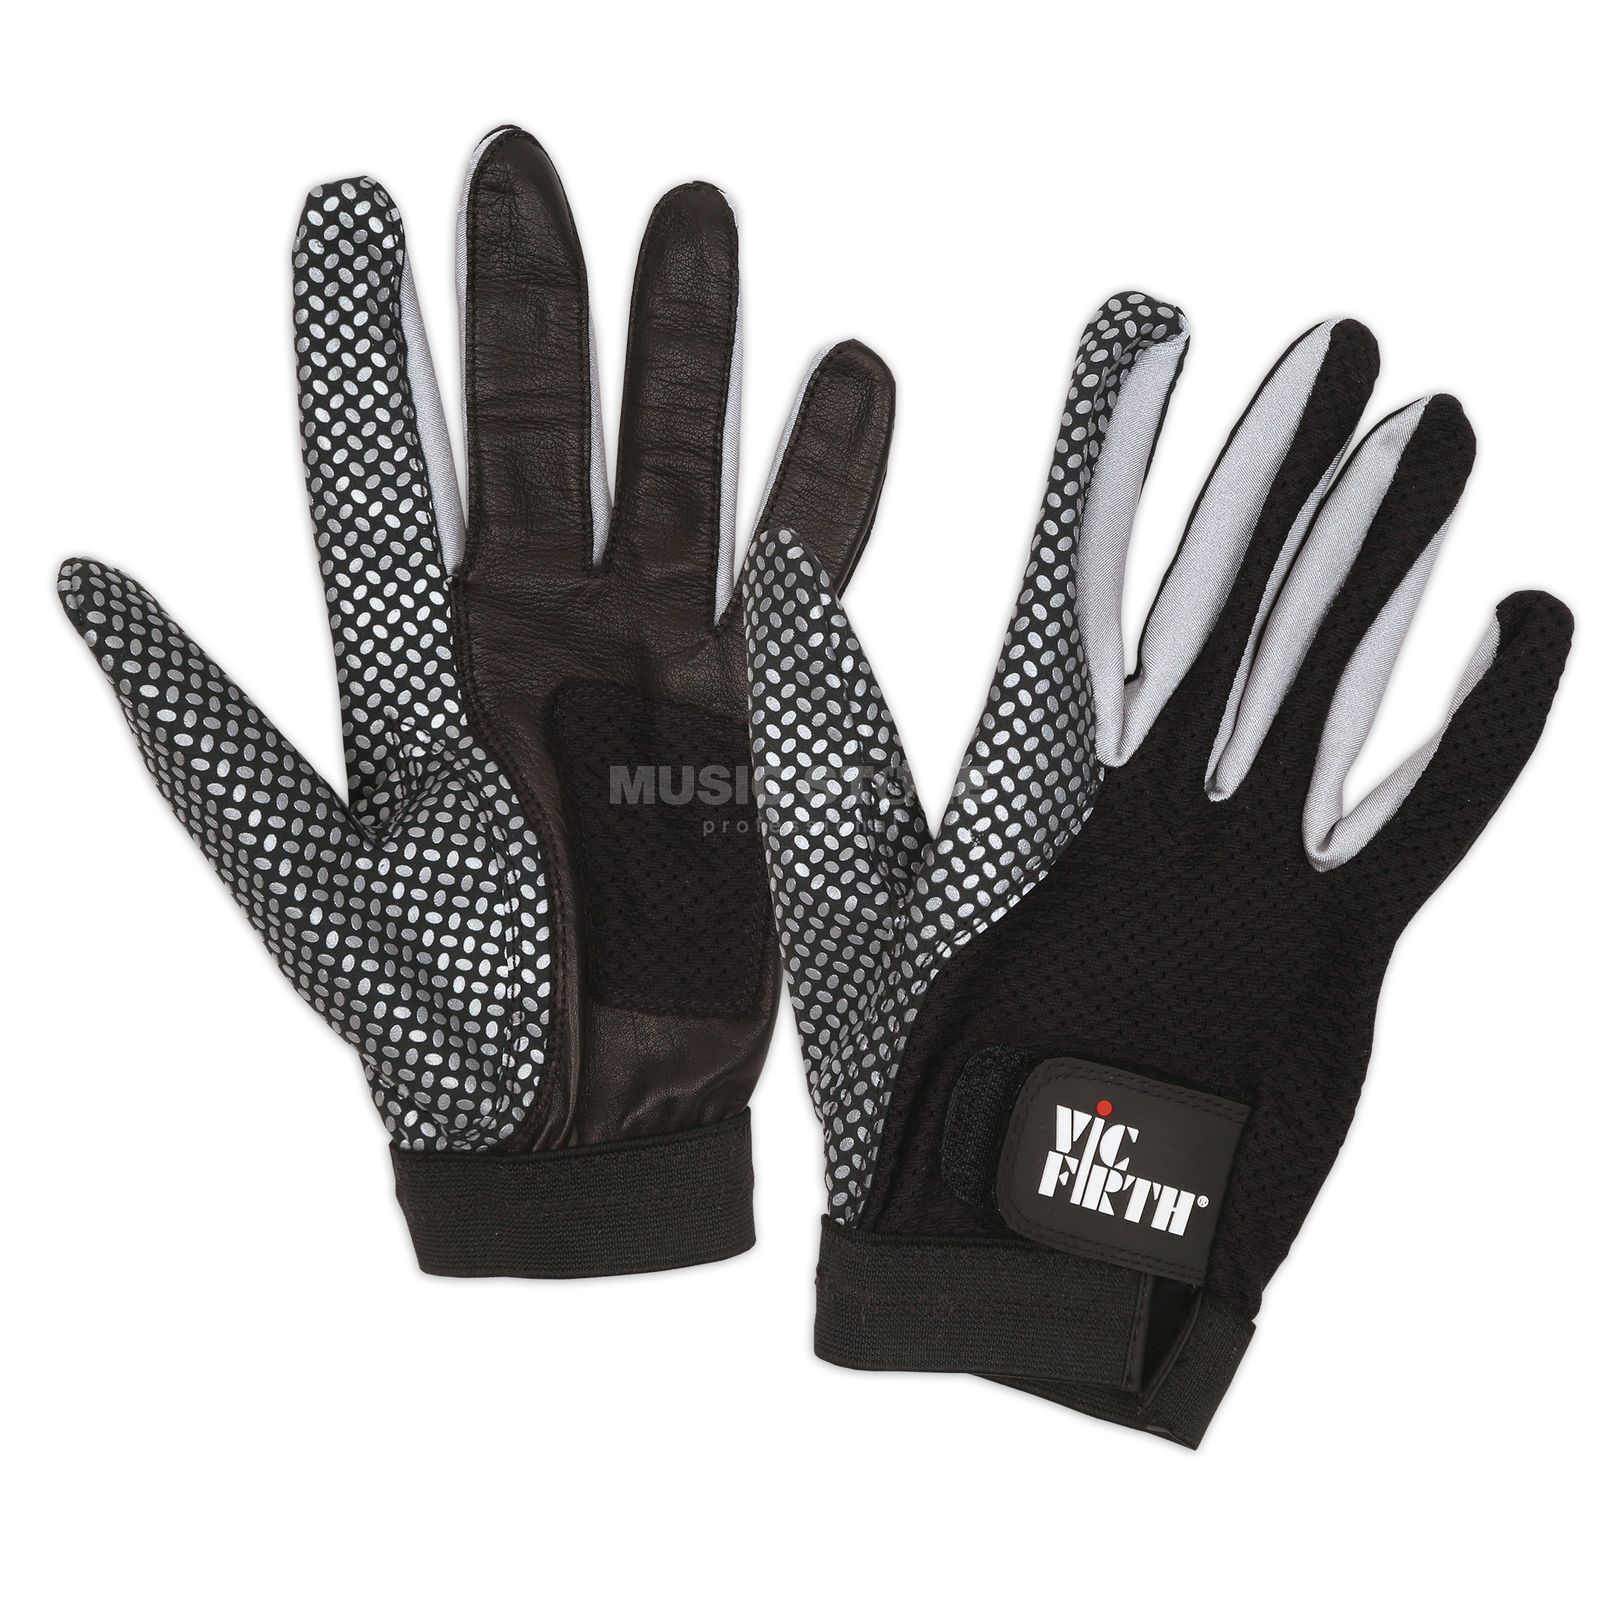 Vic-Firth Handschuhe Vic Gloves Size S Produktbild